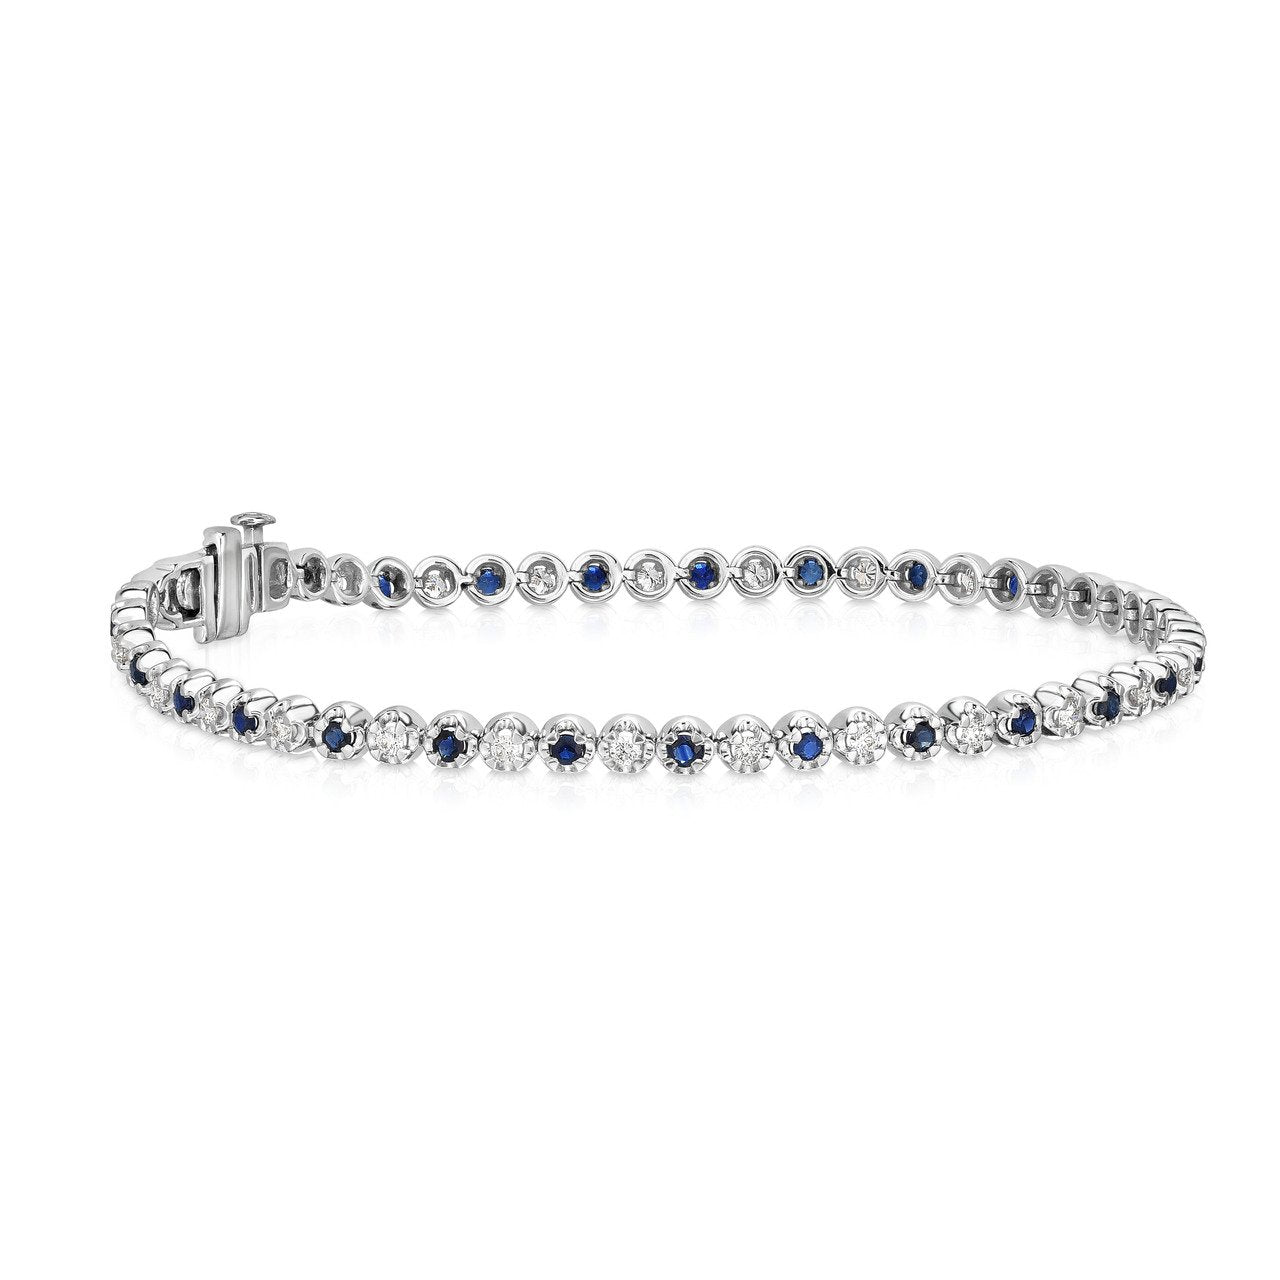 Sabel Collection 14K White Gold Sapphire and Diamond Bracelet